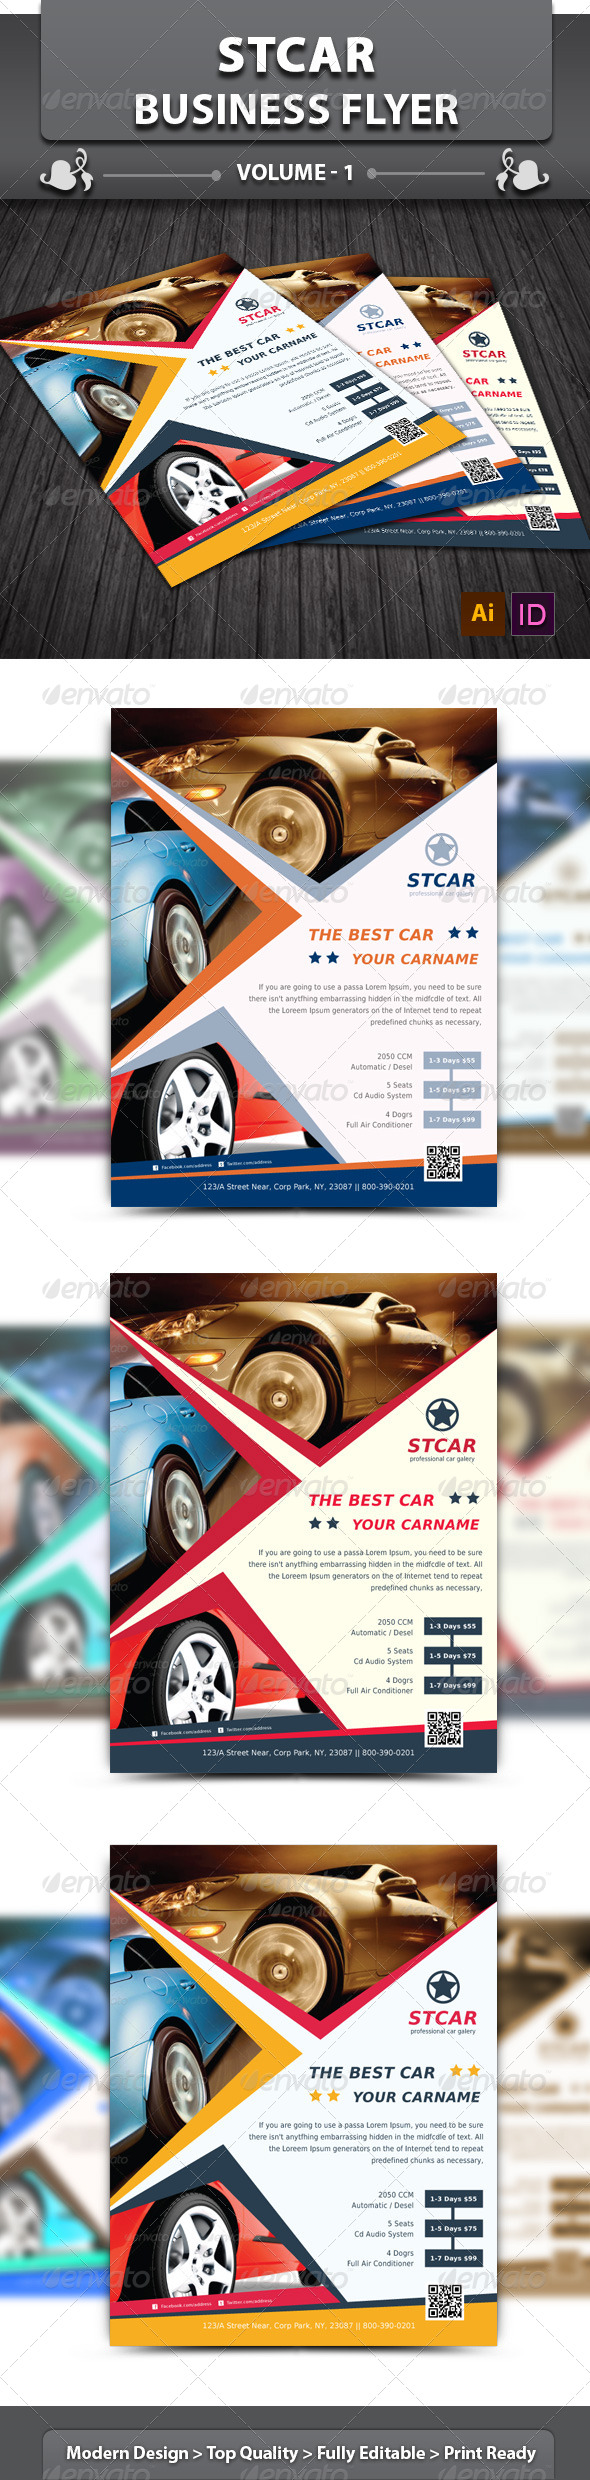 GraphicRiver Stcar Business Flyer v1 5927300